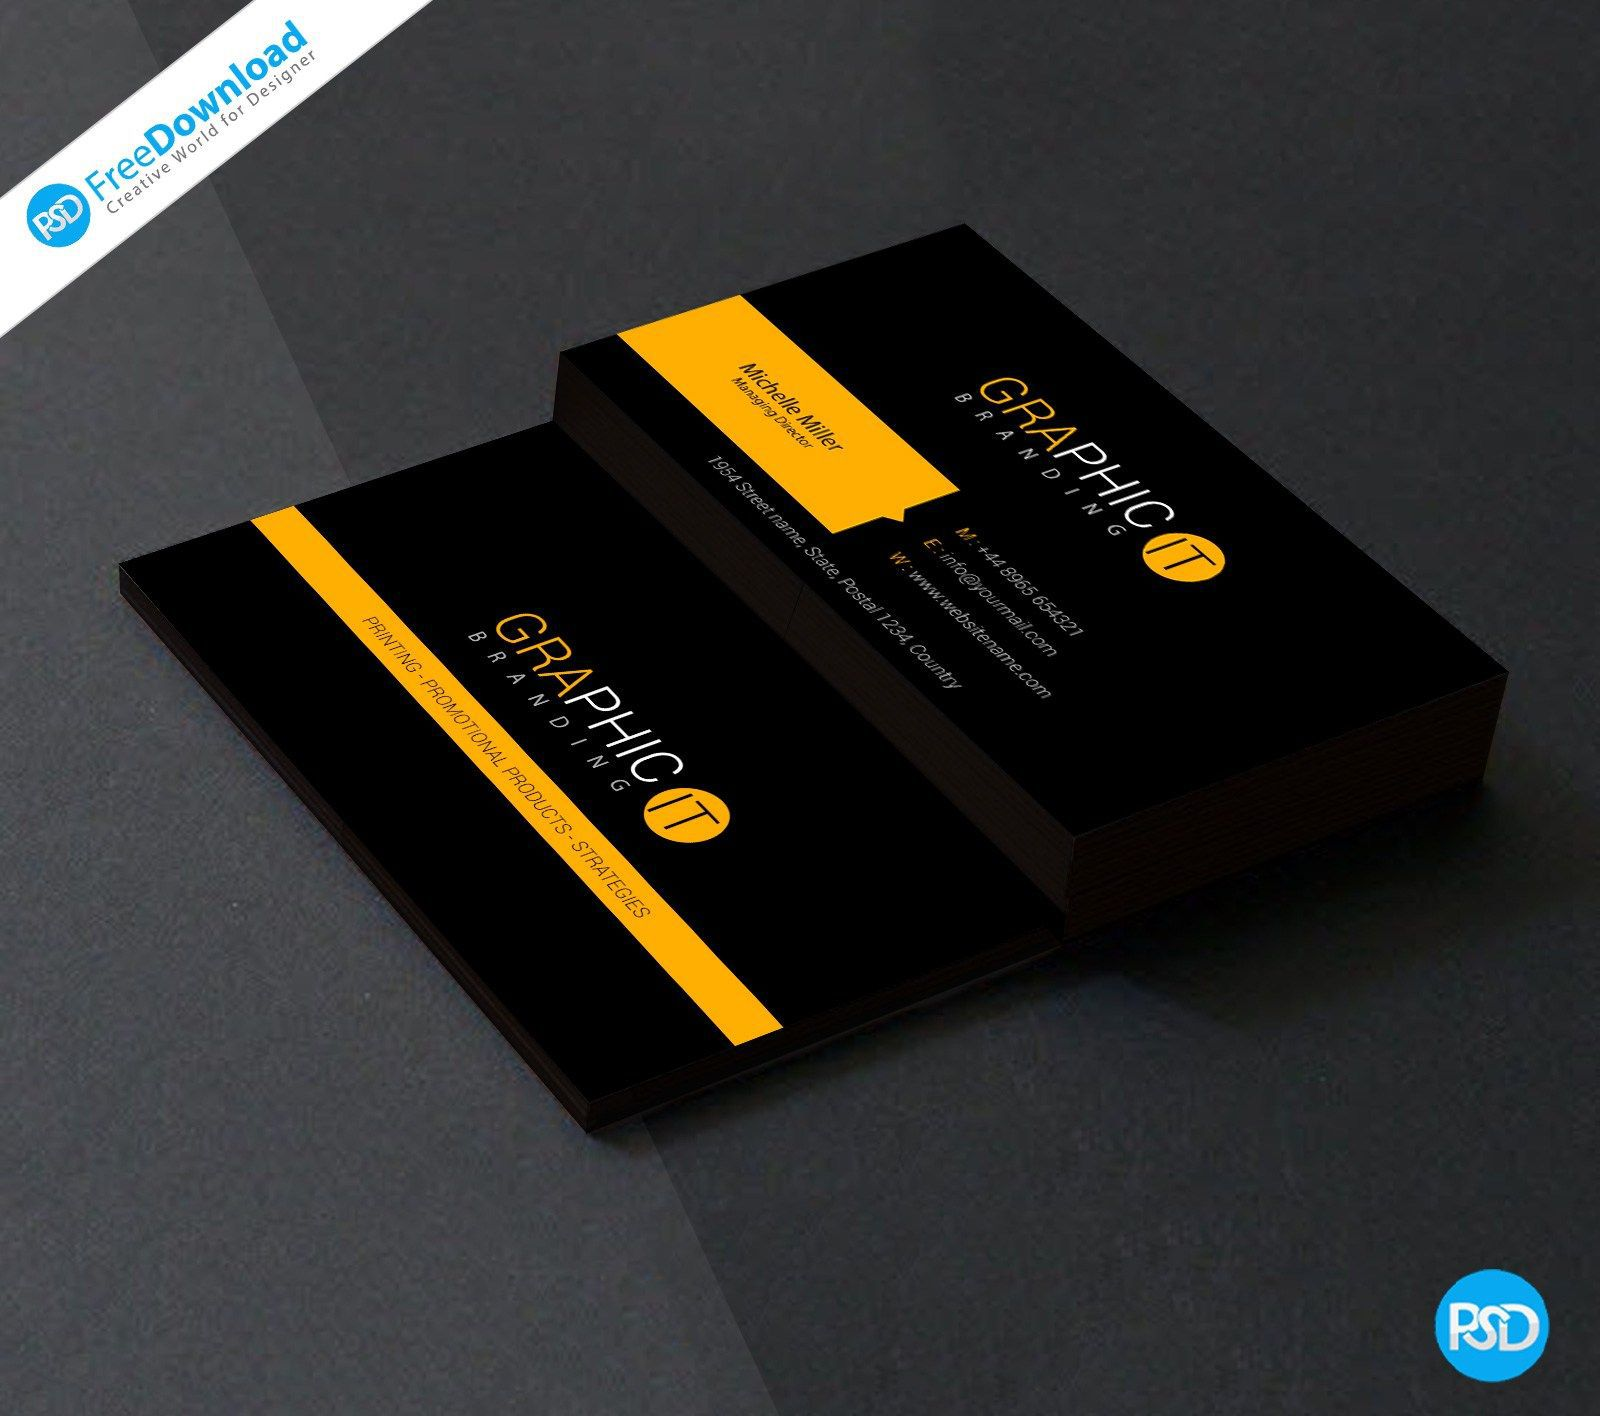 001 Archaicawful Free Blank Busines Card Template Photoshop Photo  Download PsdFull